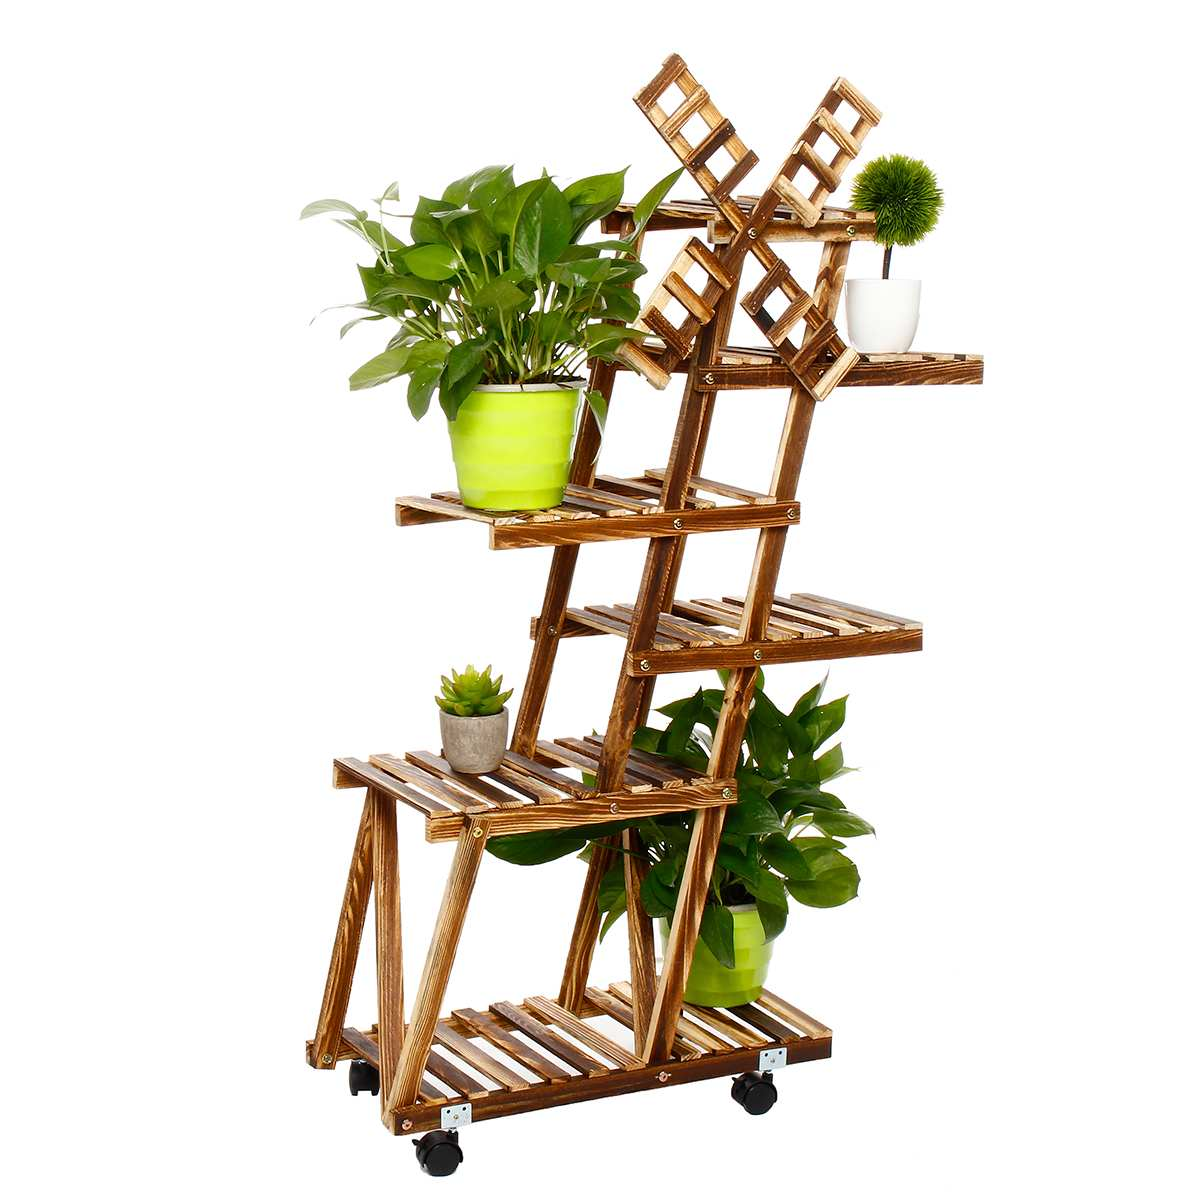 6 Type Furniture Wood Flower Rack Plant Stand With Roller Multi Layer Flower Shelf  Wedding Decor Garden Bonsai Display Windmill